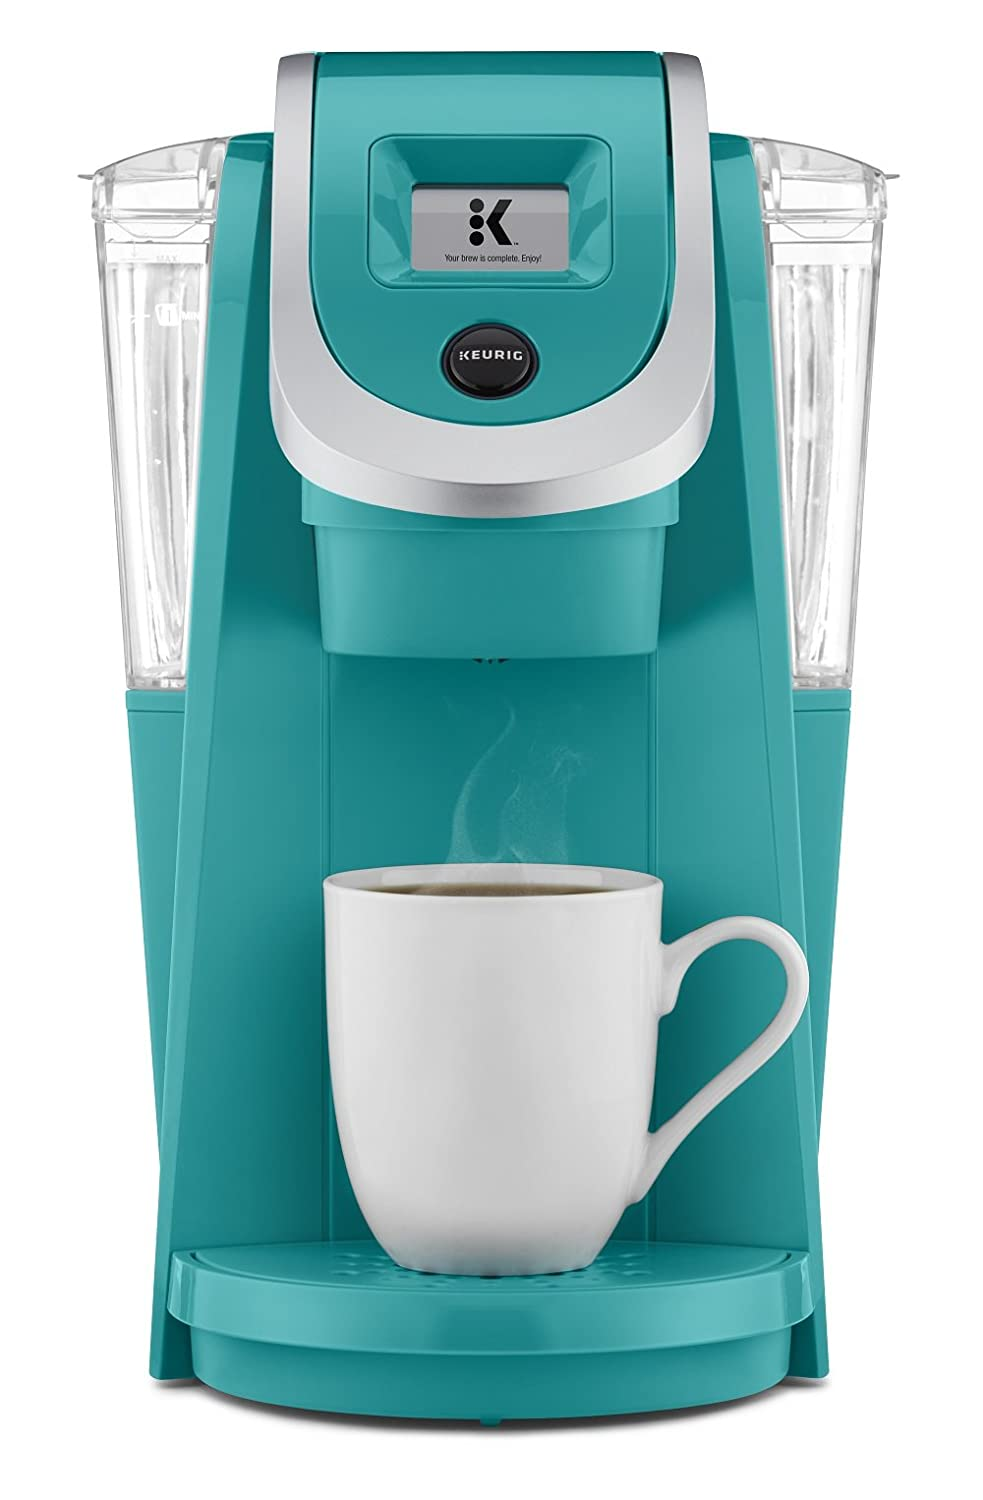 Keurig 119277 K250 Coffee Maker, Turquoise best high school graduation gifts